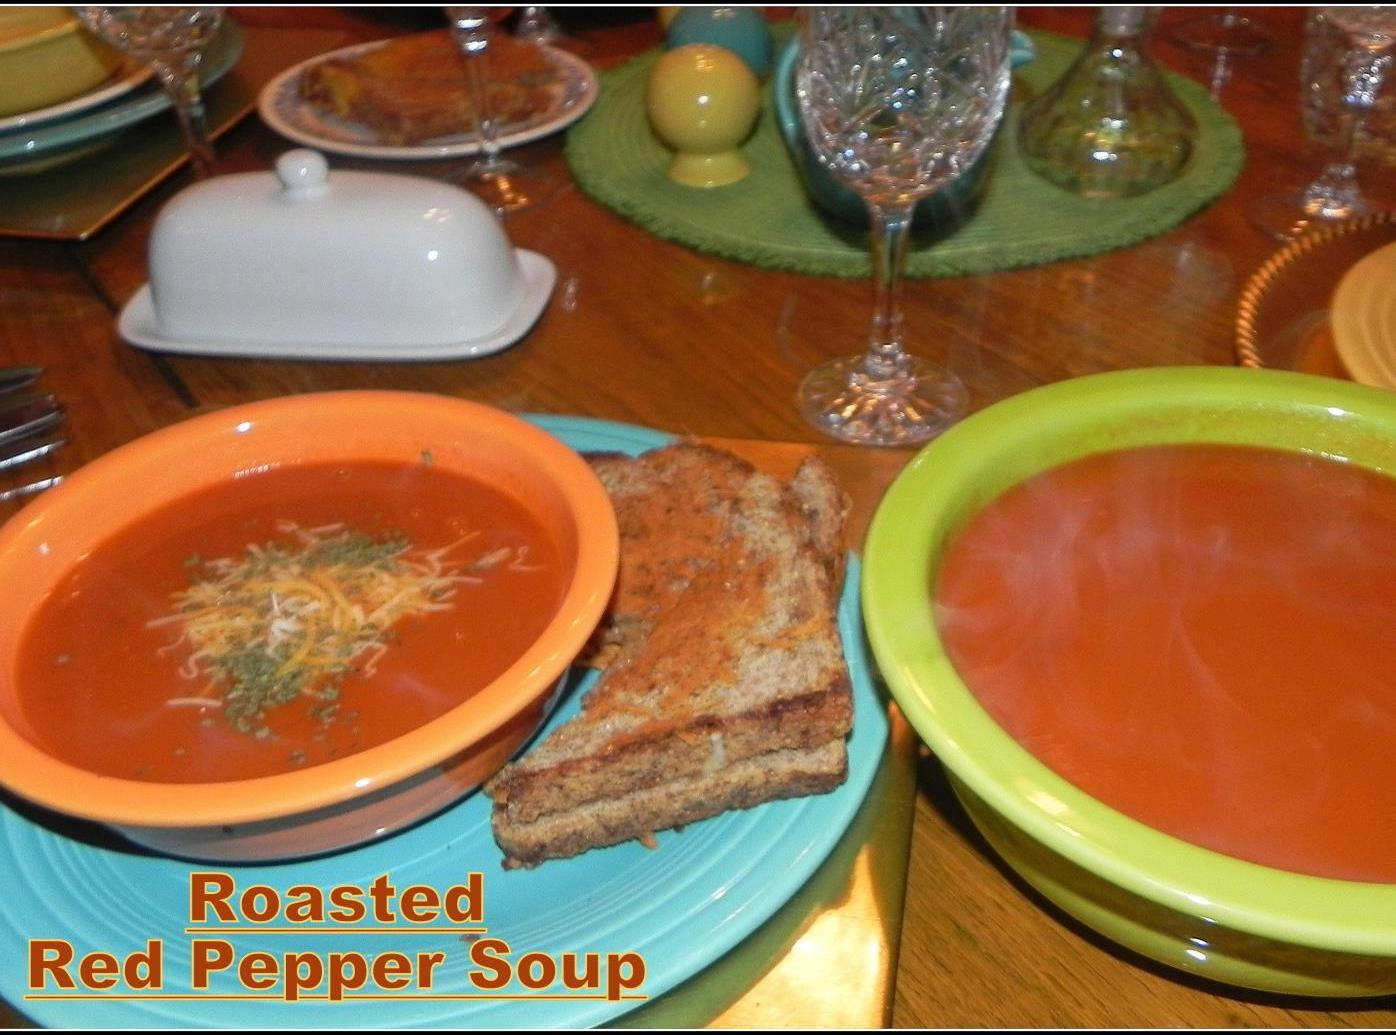 Roasted Red Pepper Soup Recipe | Just A Pinch Recipes